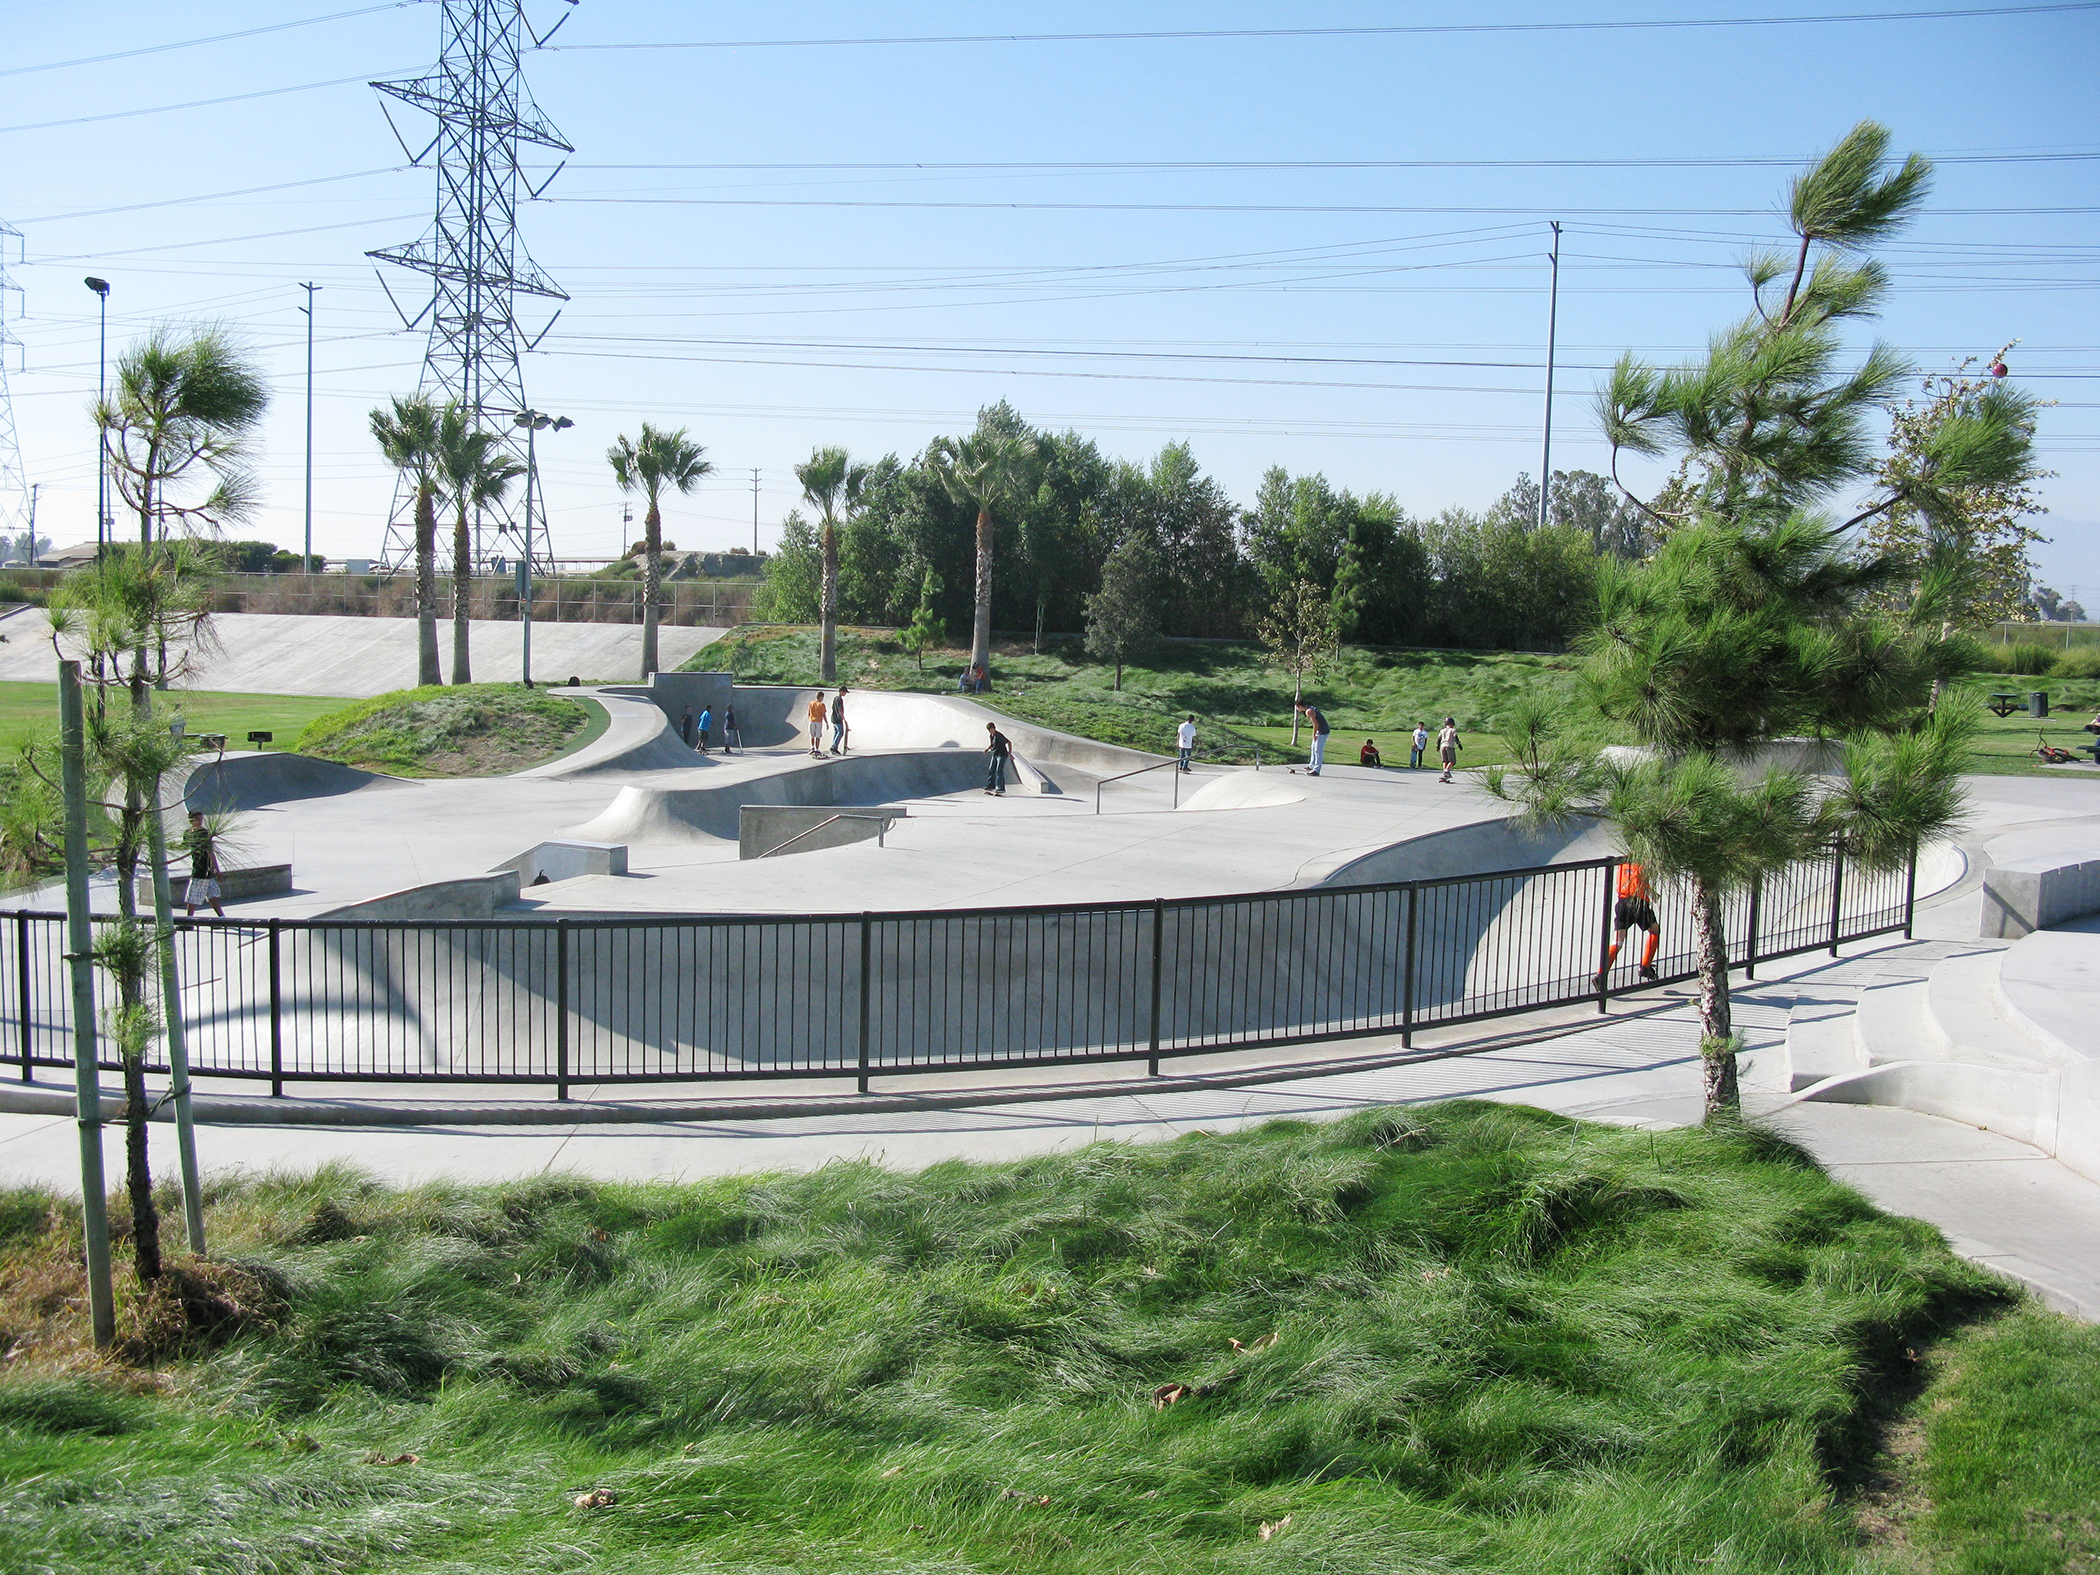 <strong>Eastvale, California. </strong>Tucked in a desert valley about 45 miles east of downtown Los Angeles, Eastvale feels like a shiny new toy: Built on land formerly owned by dairy farmers, it was incorporated only six years ago and is one of the most racially diverse  places on our list.